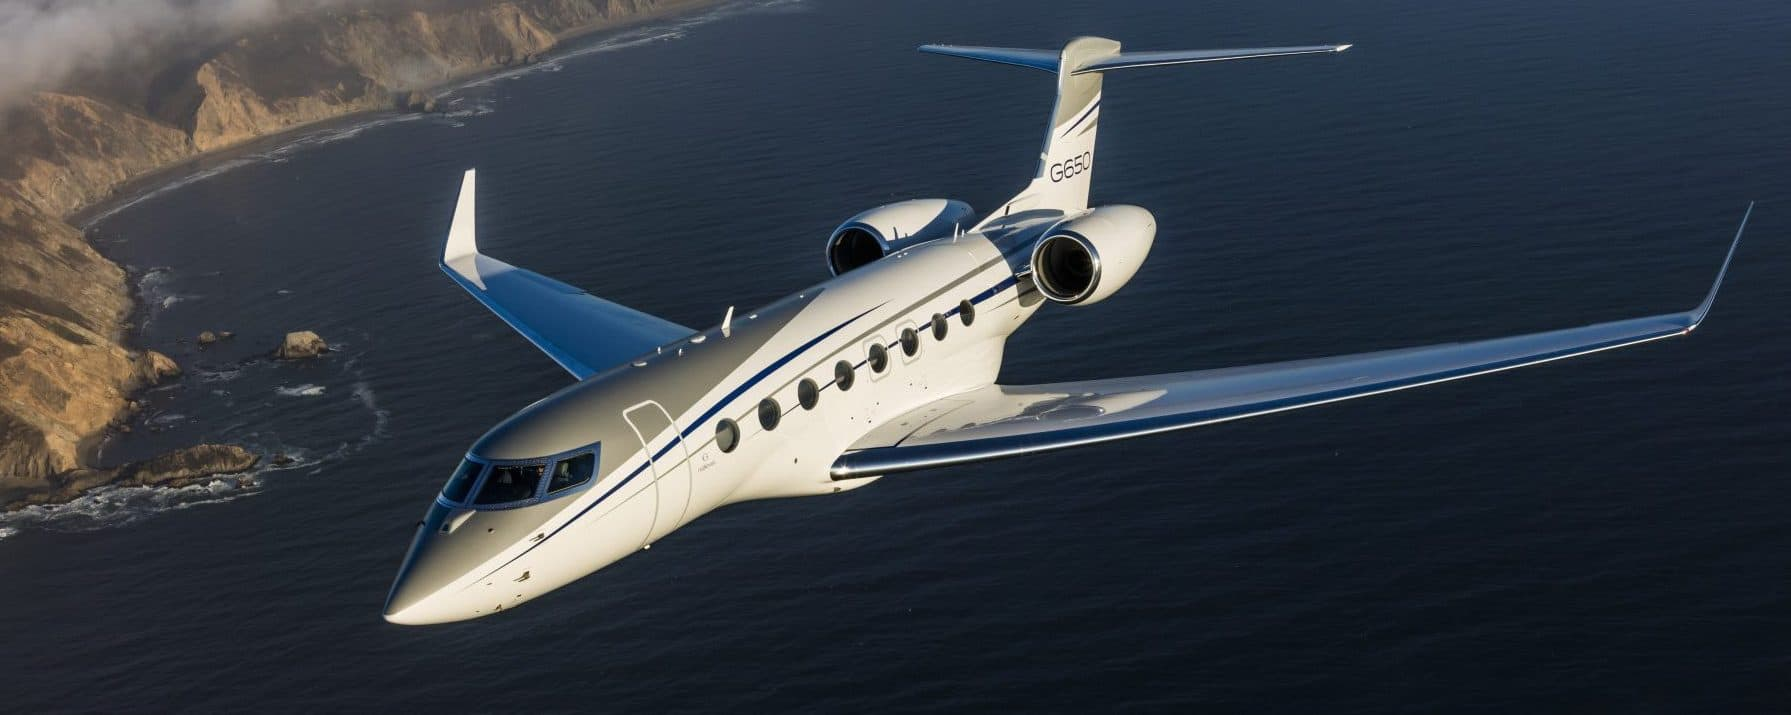 Gulfstream G650ER aircraft management